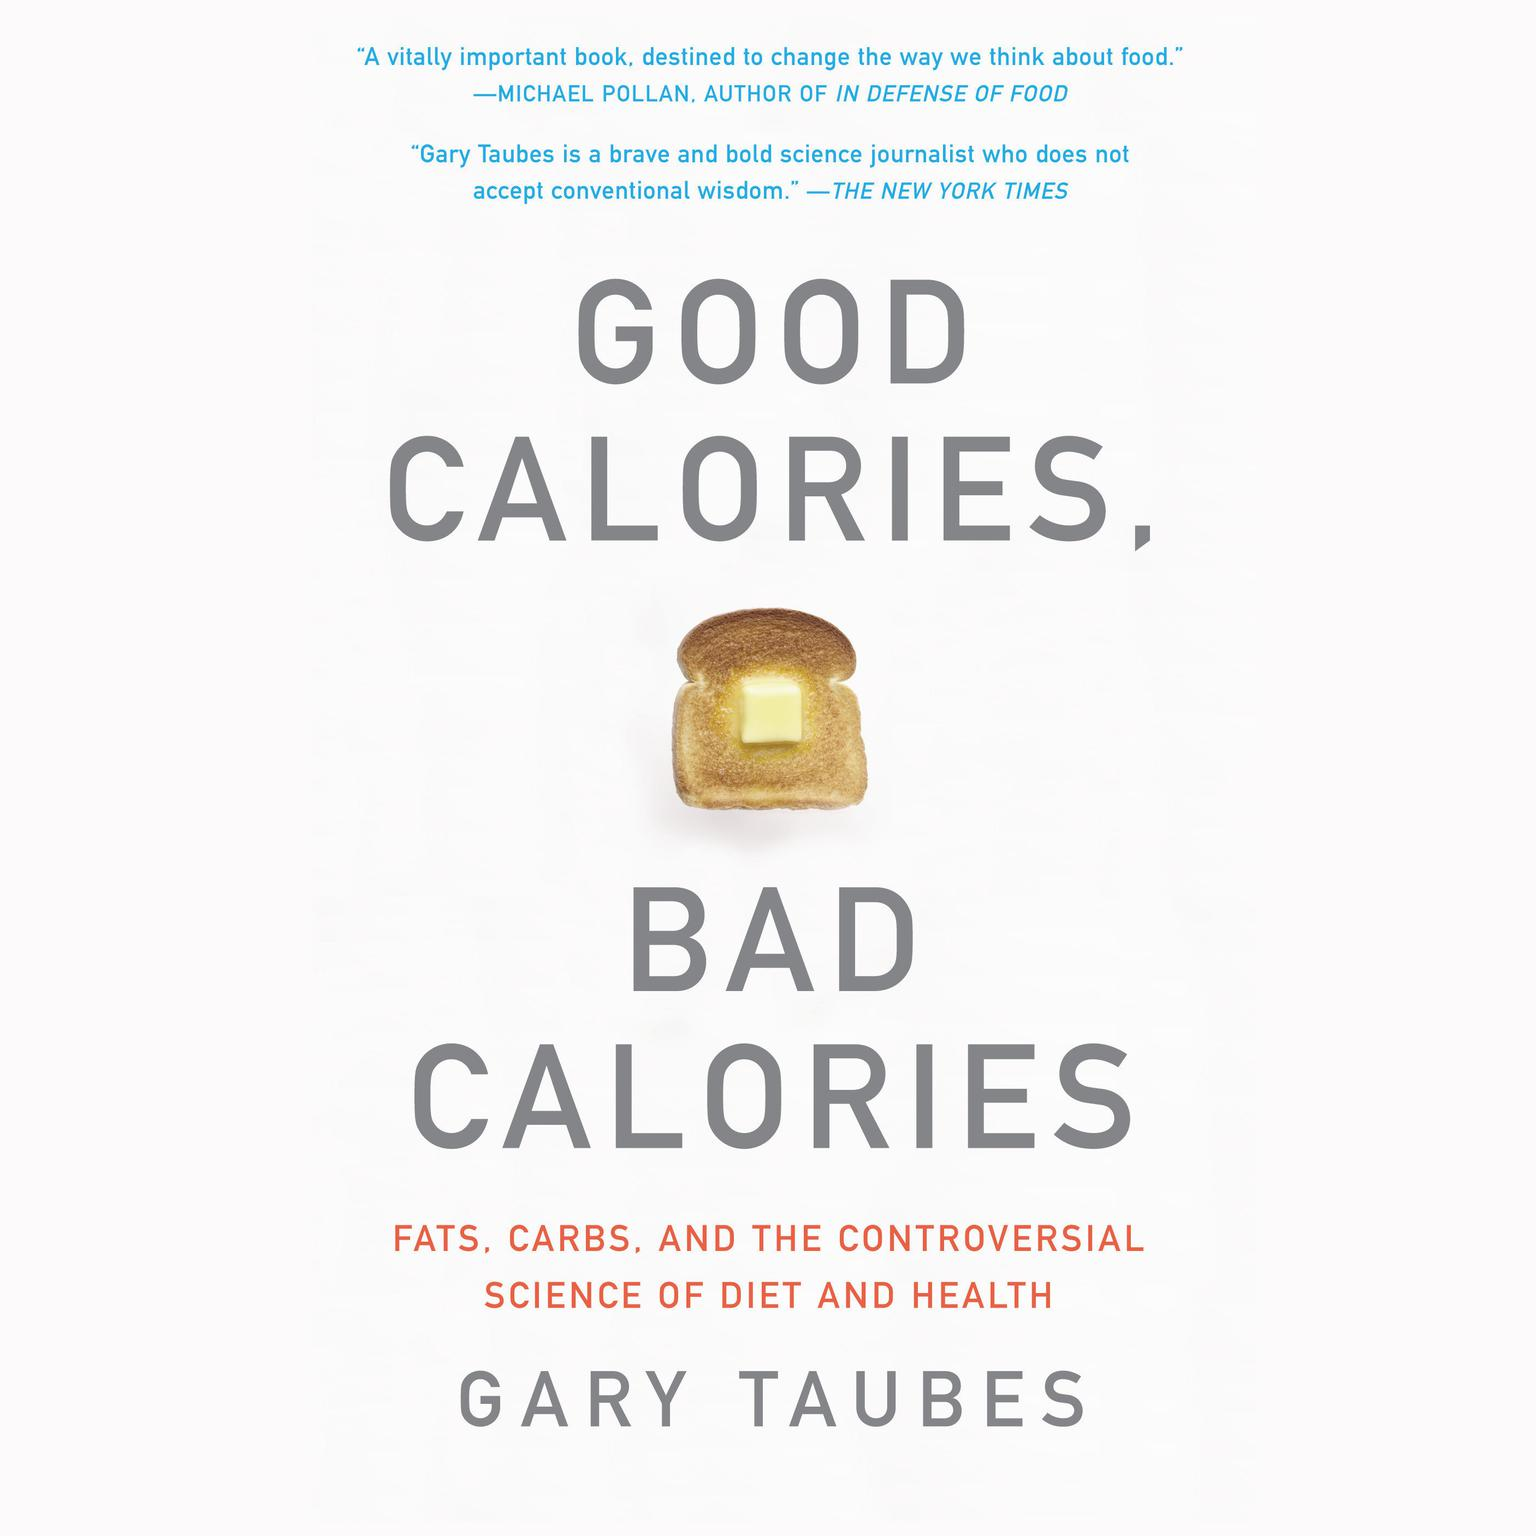 Good Calories, Bad Calories: Fats, Carbs, and the Controversial Science of Diet and Health Audiobook, by Gary Taubes